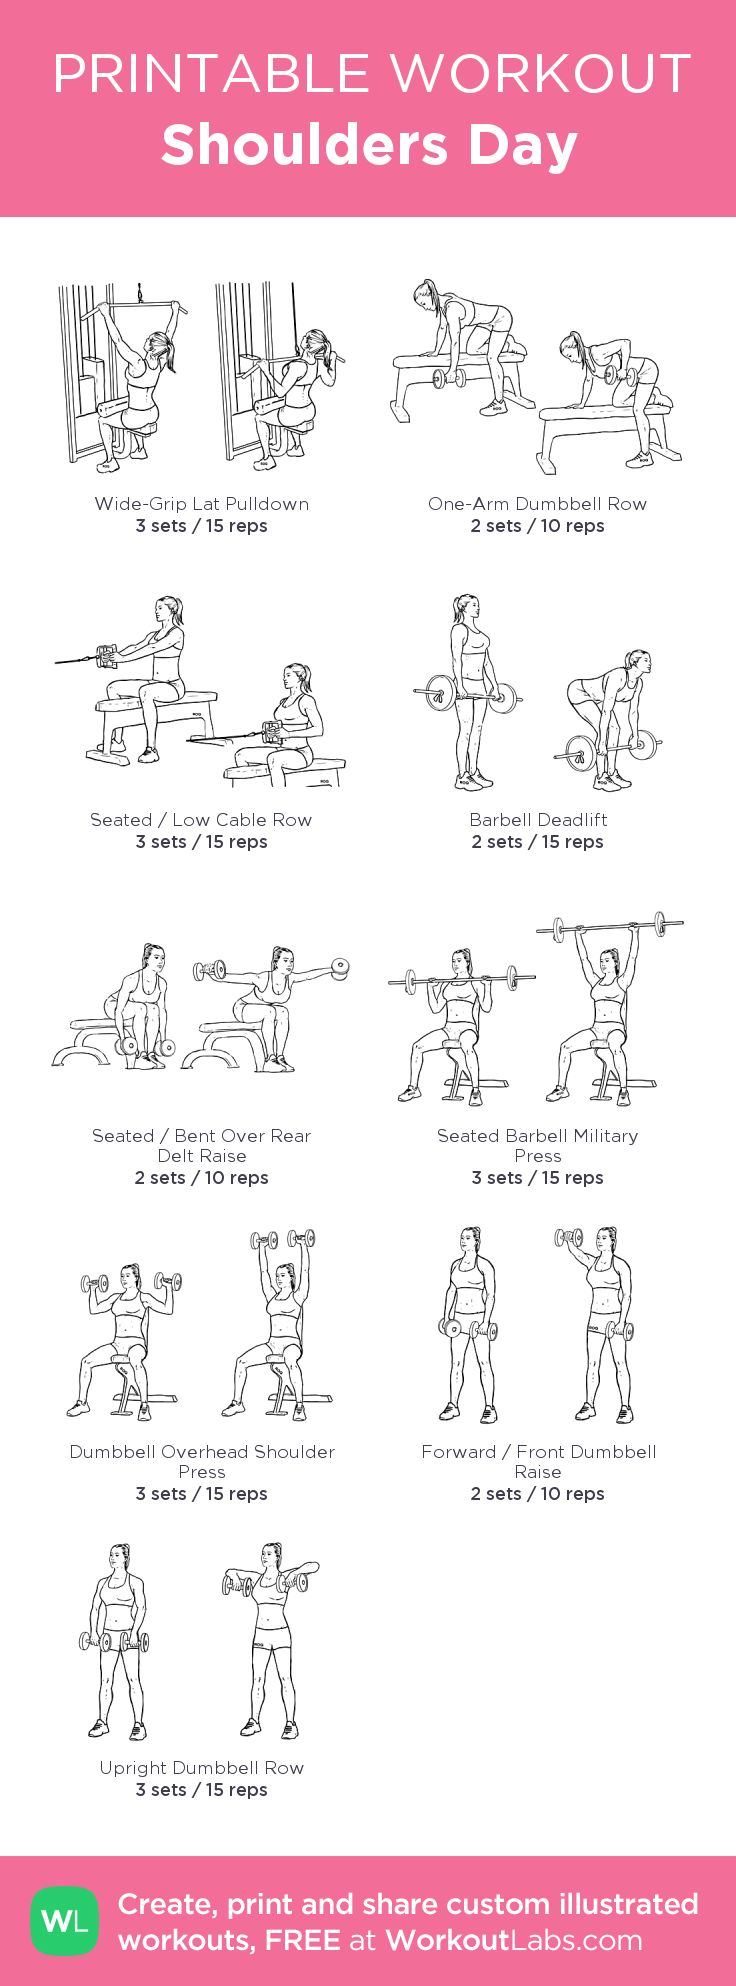 Shoulders Day: my visual workout created at WorkoutLabs.com • Click through to customize and download as a FREE PDF! #customworkout